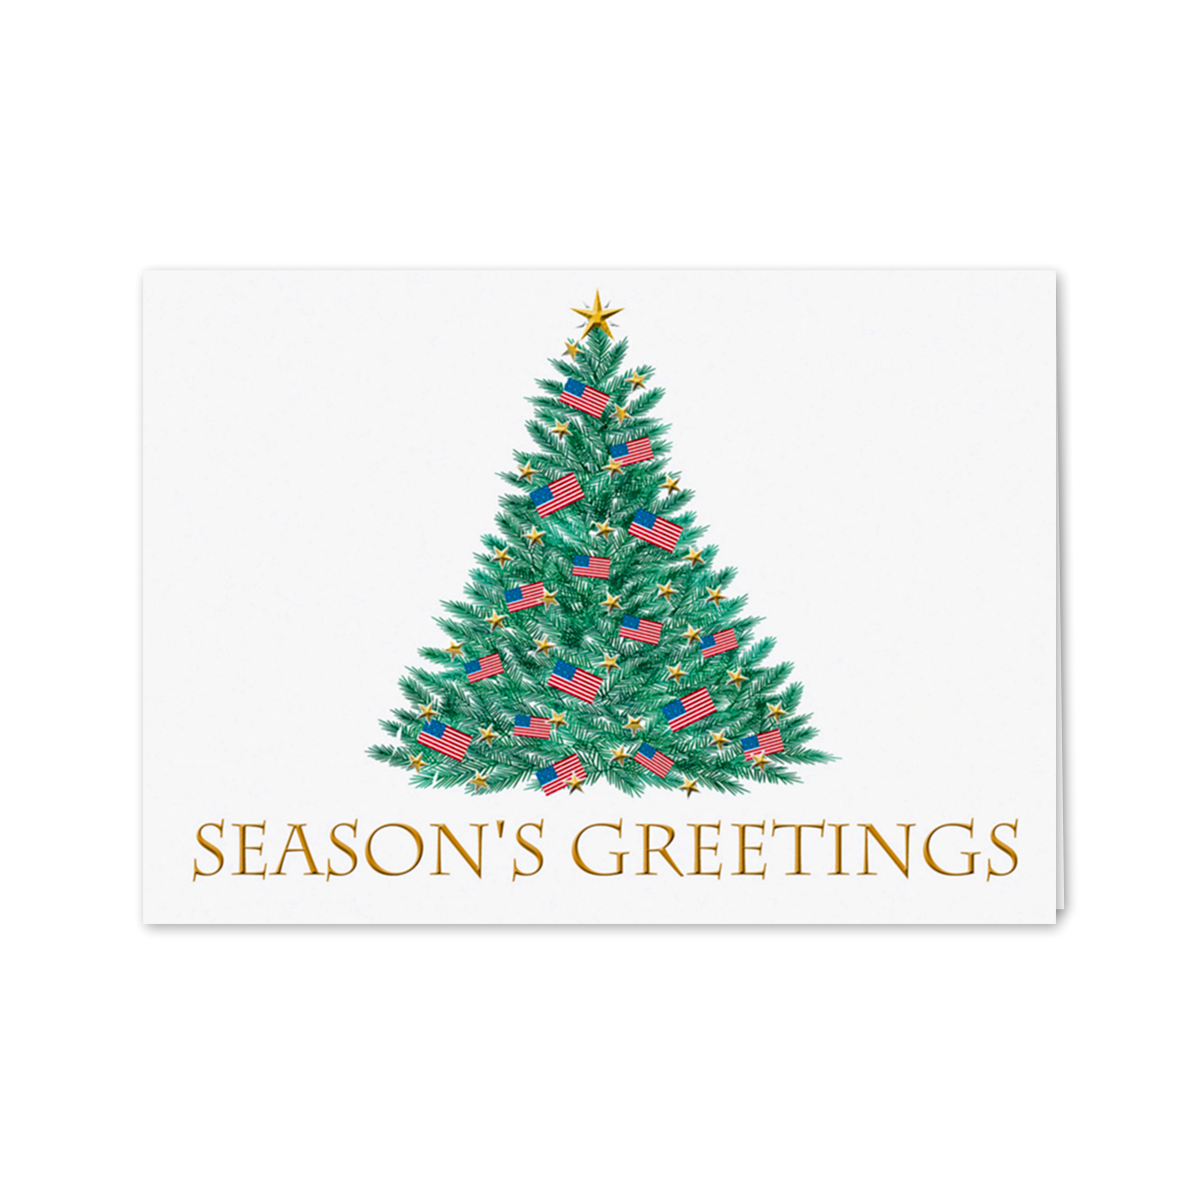 Patriotic Season's Greetings Greeting Card